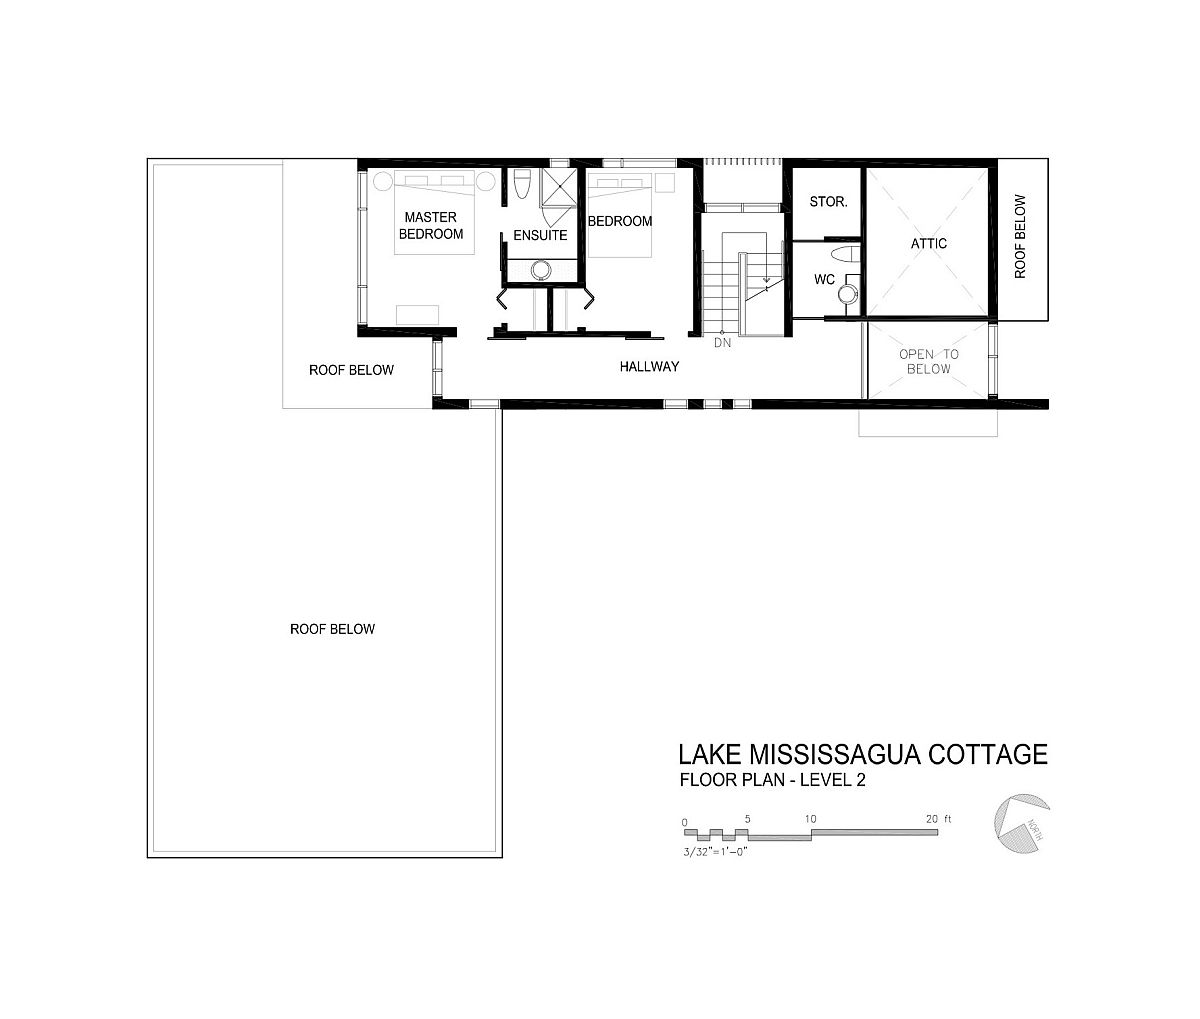 Second level floor plan of Lake Mississauga Cottage